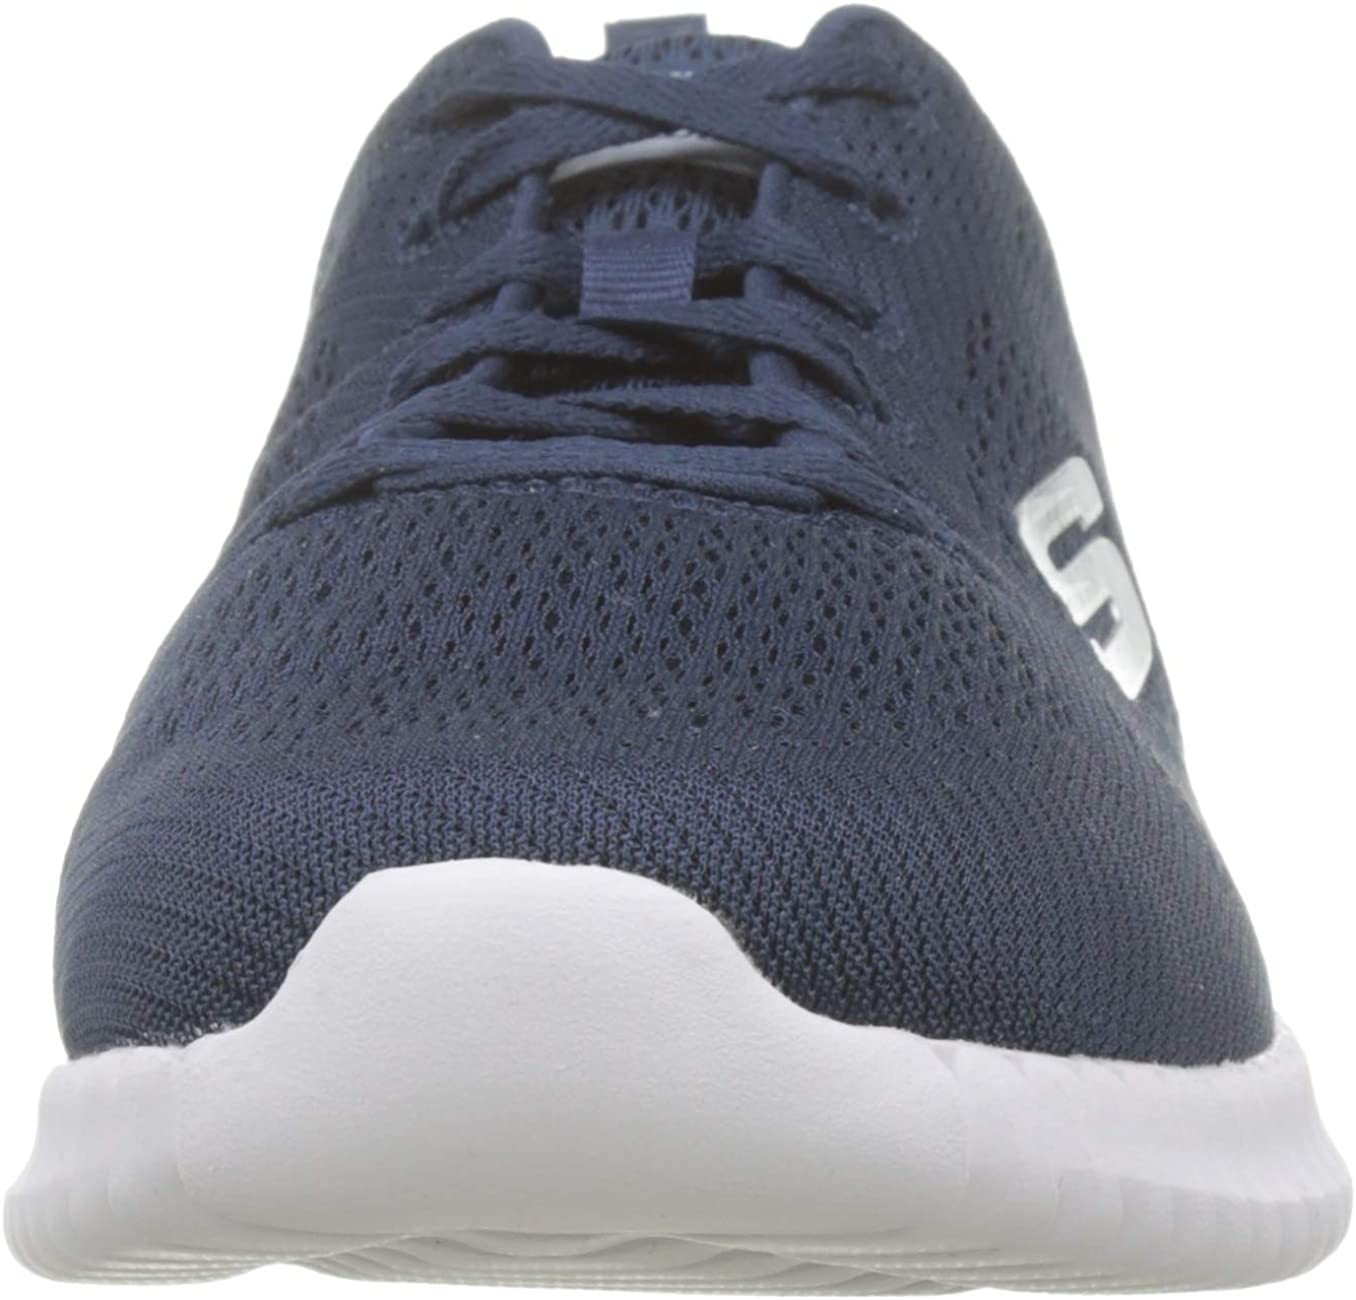 Skechers Men's Elite Flex-Clear Leaf Trainers Blue Navy Nvy